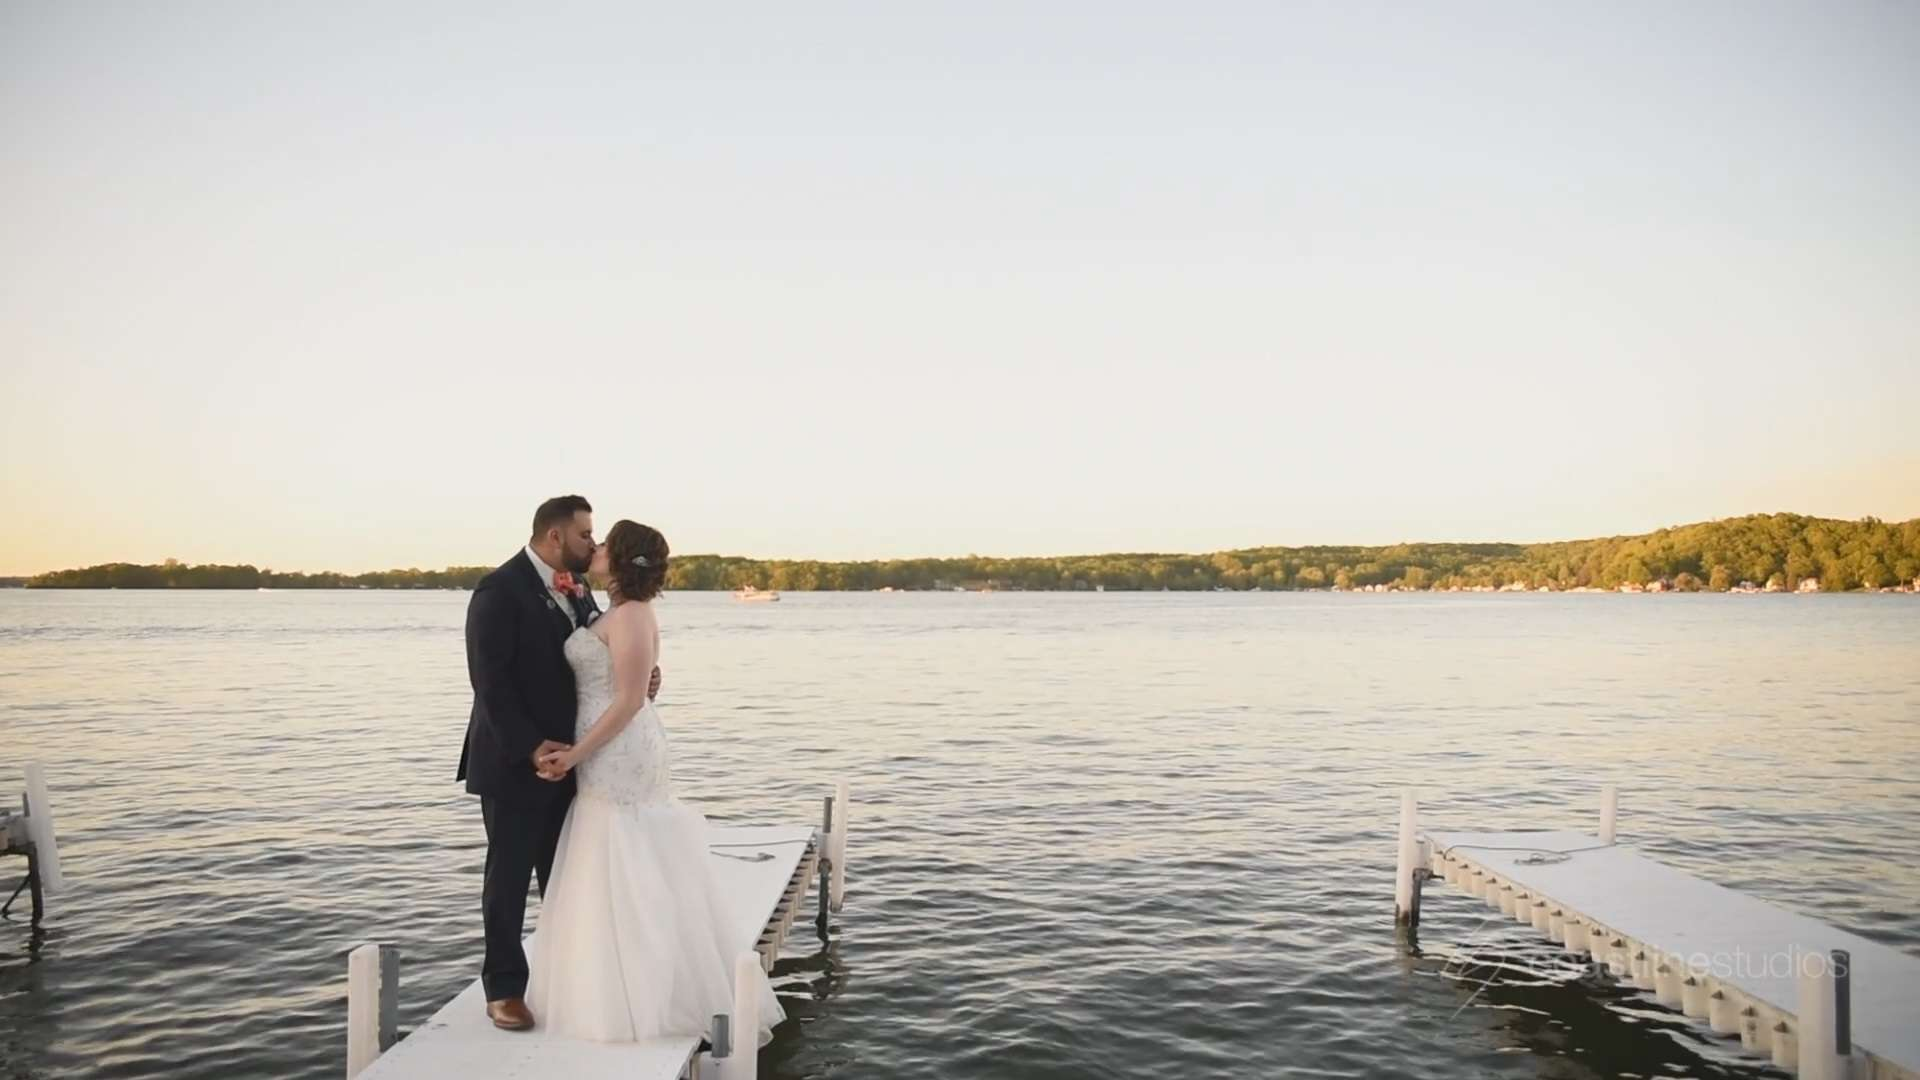 Alicia + Ahmad's Wedding Highlight Film